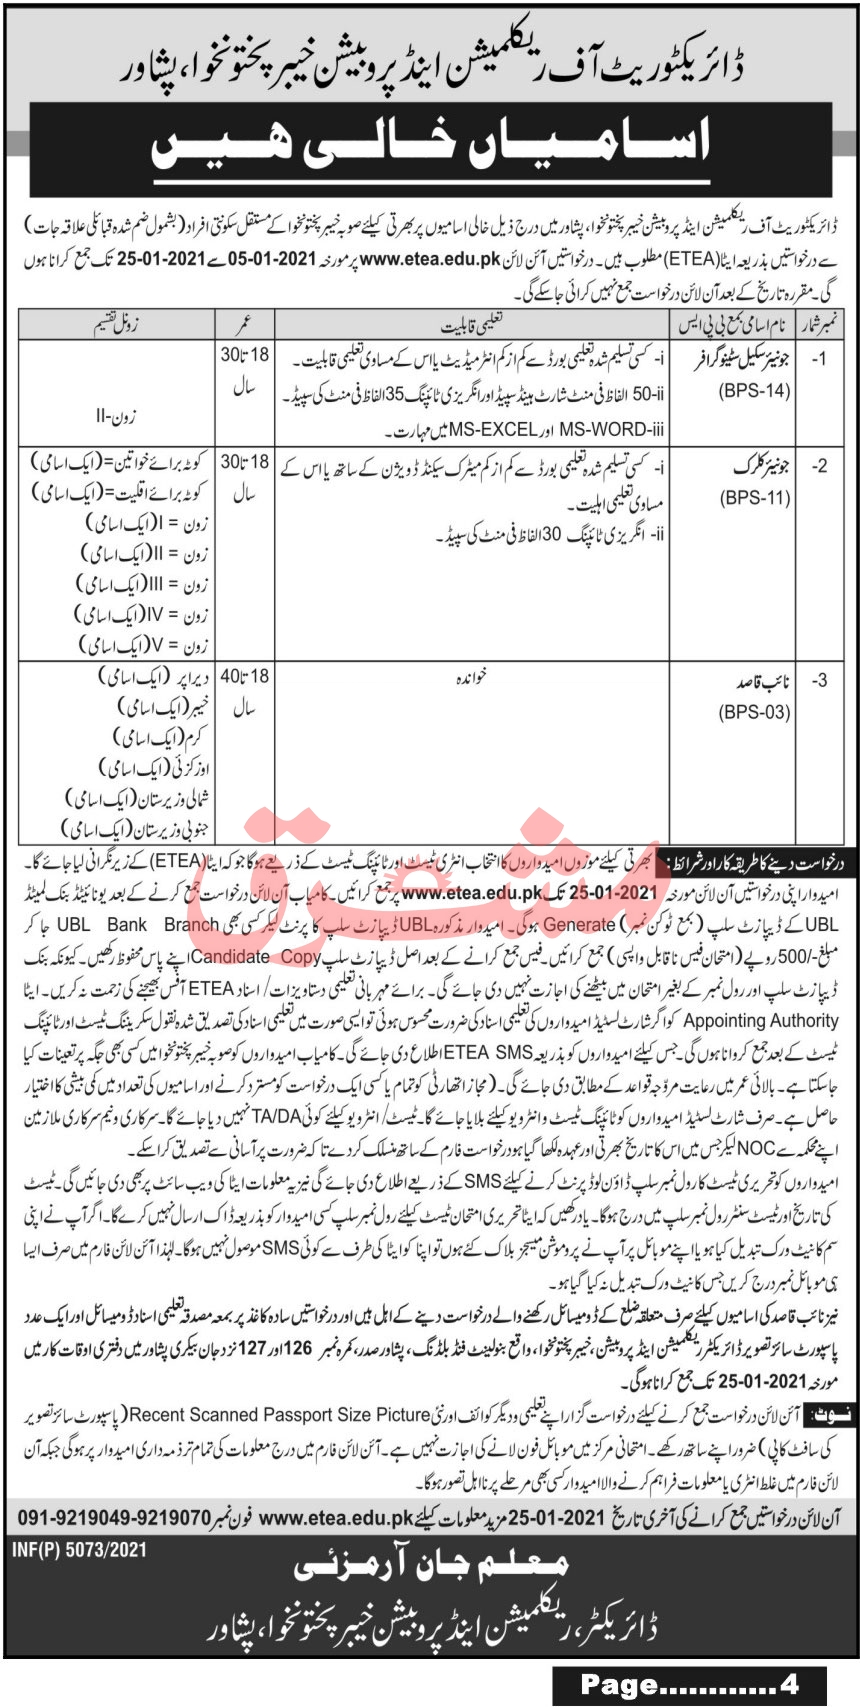 Directorate of Reclaimation & Probation Peshawar ETEA Jobs January 2021